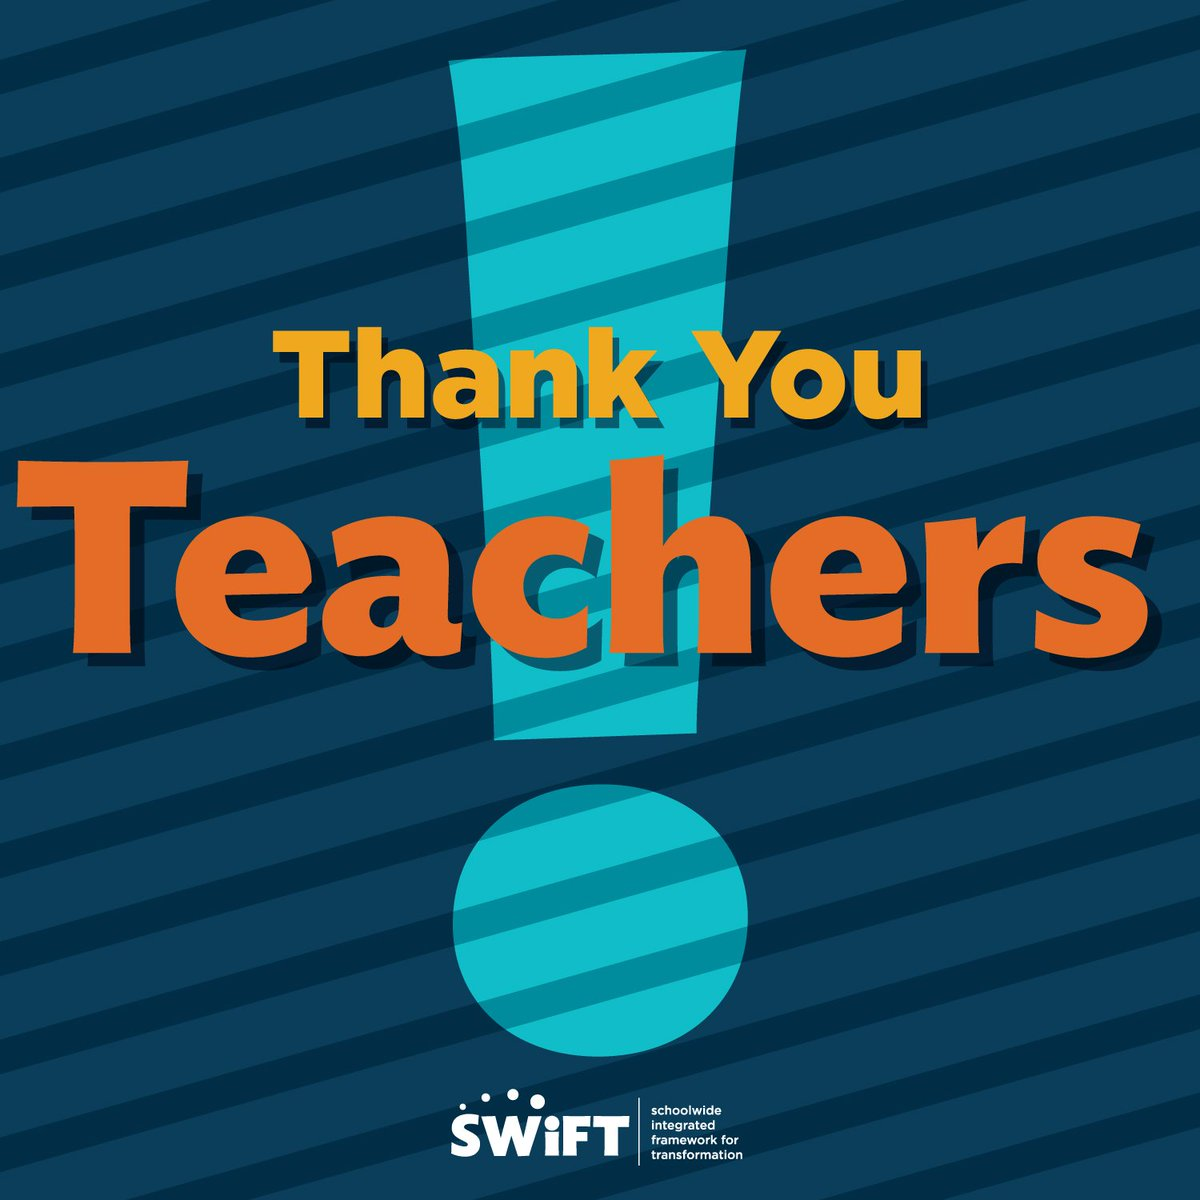 SWIFT honors teachers during Teacher Appreciation Week! We hope you will enjoy this video! bit.ly/2ppbTFb